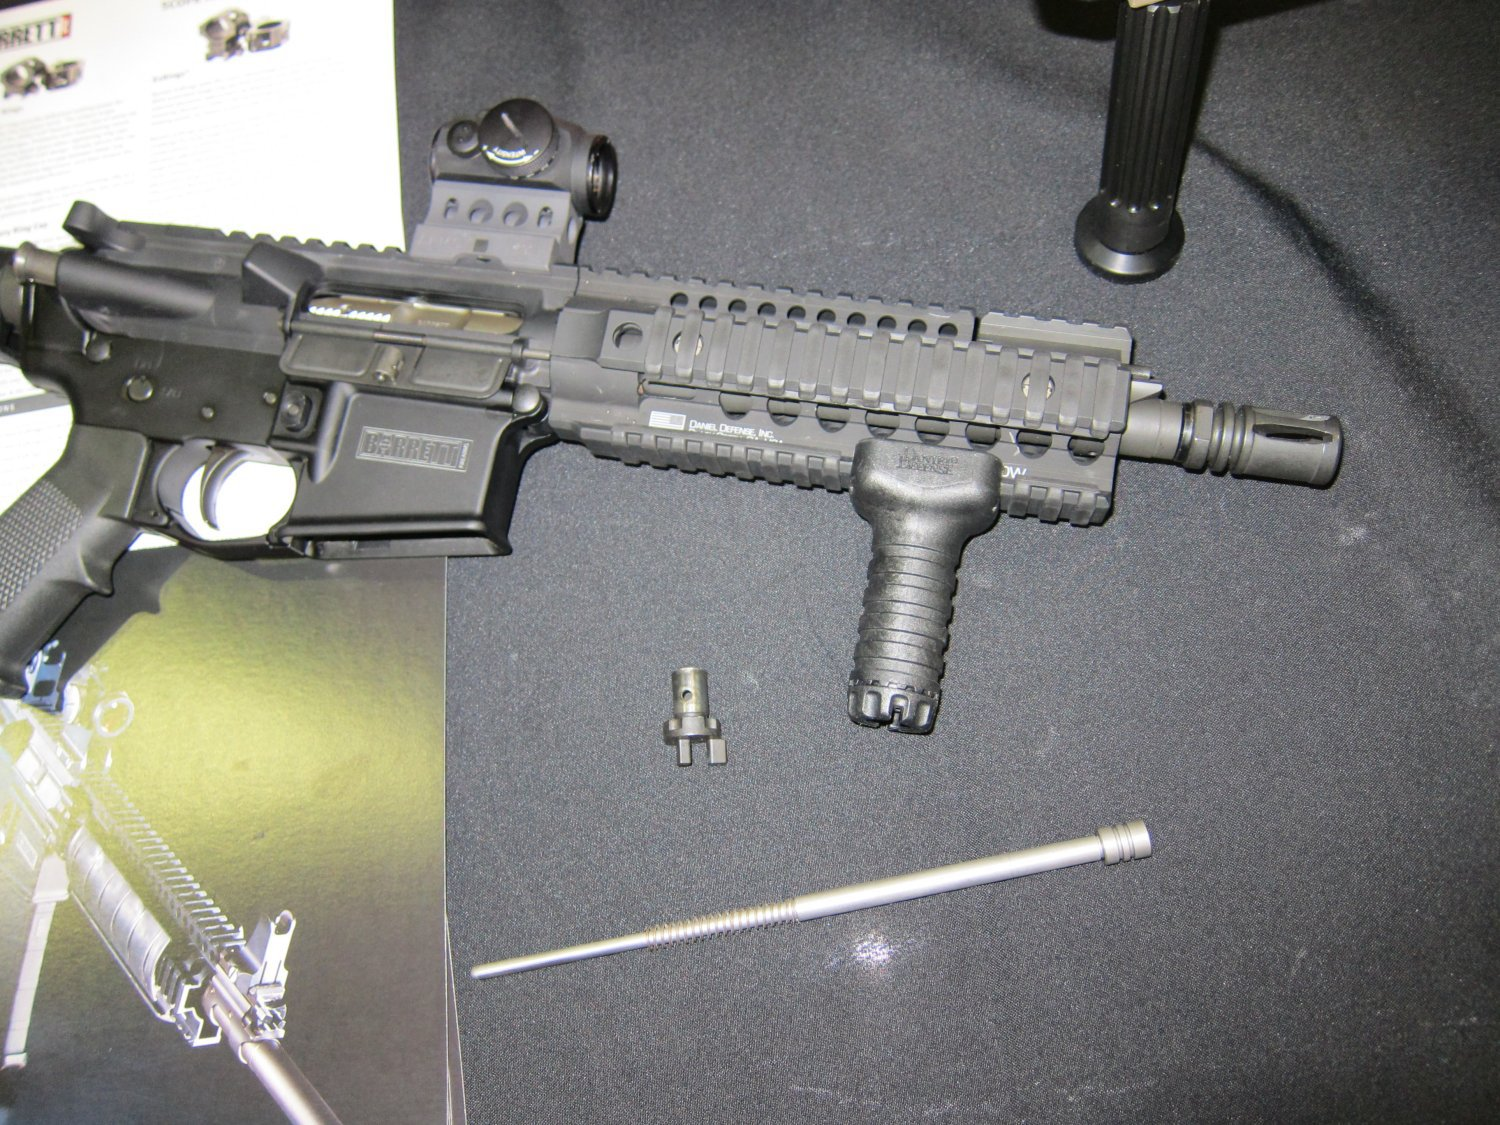 Barrett REC7 5.56 8″ Piston AR PDW Displayed at SOFIC 2010 (Photos!): 5.56mm NATO Piston-Driven Tactical AR Carbine/SBR for Military Special Operations Forces (SOF)